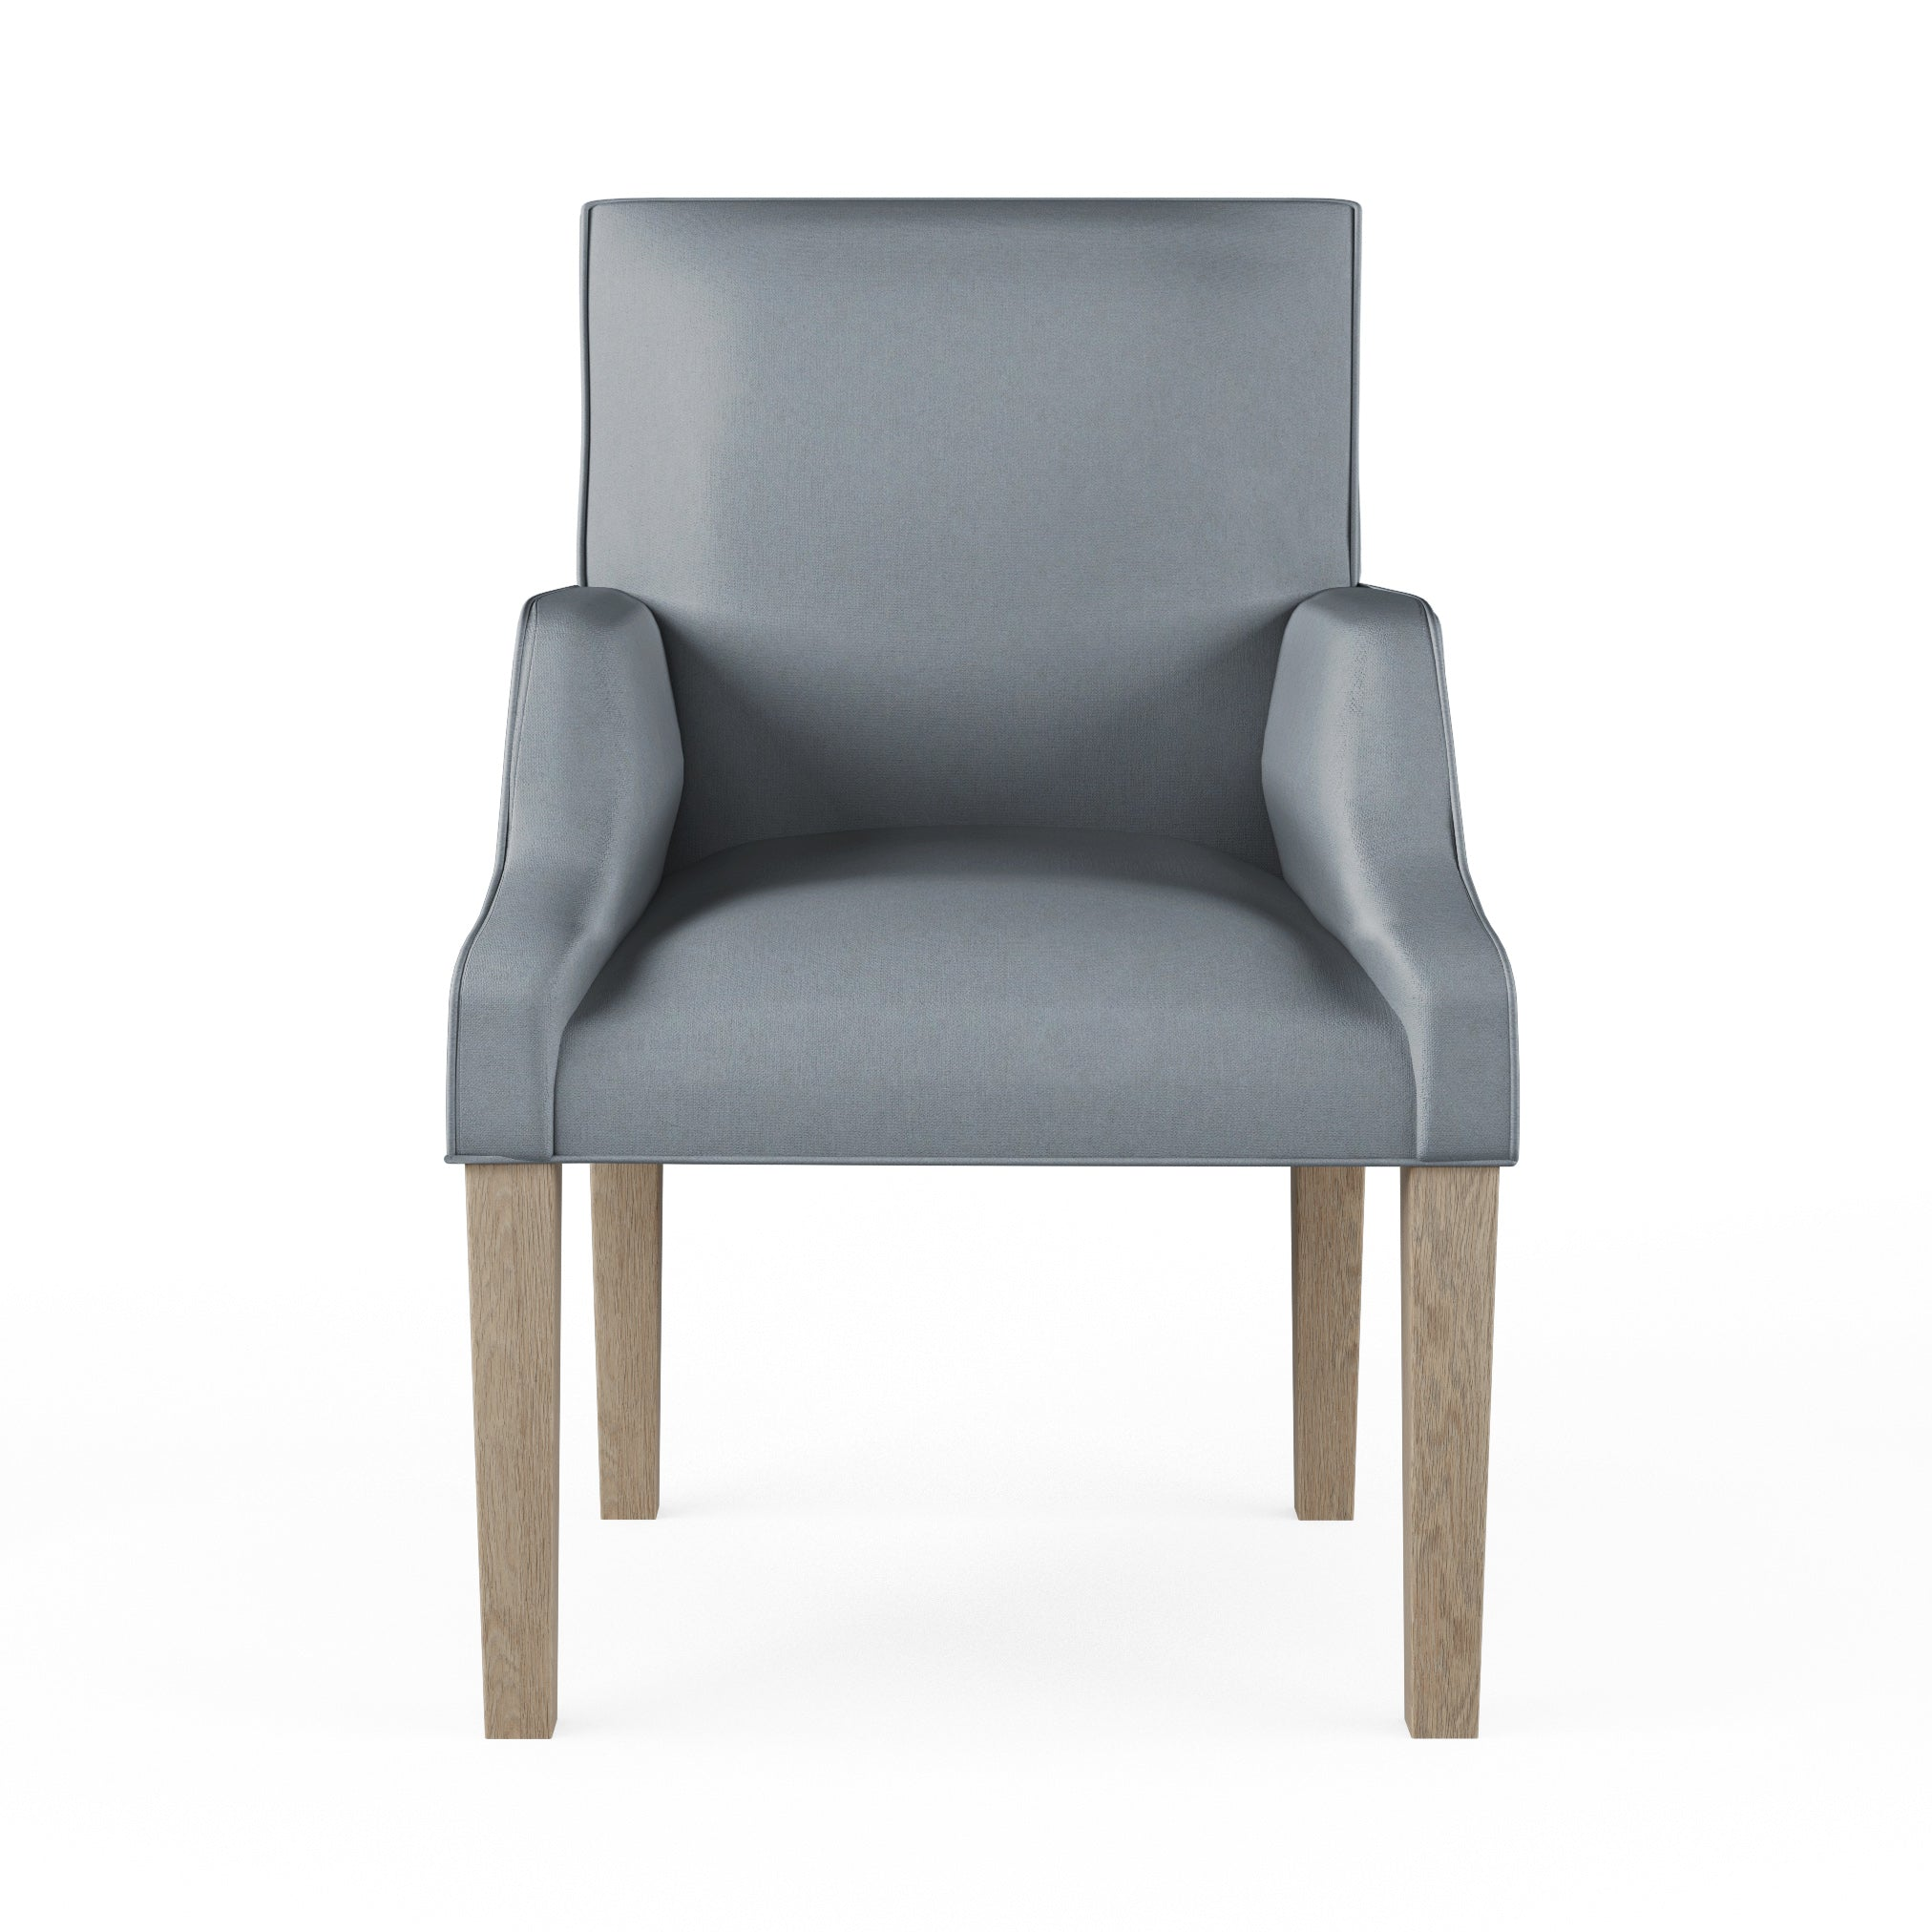 Juliet Dining Chair - Haze Plush Velvet